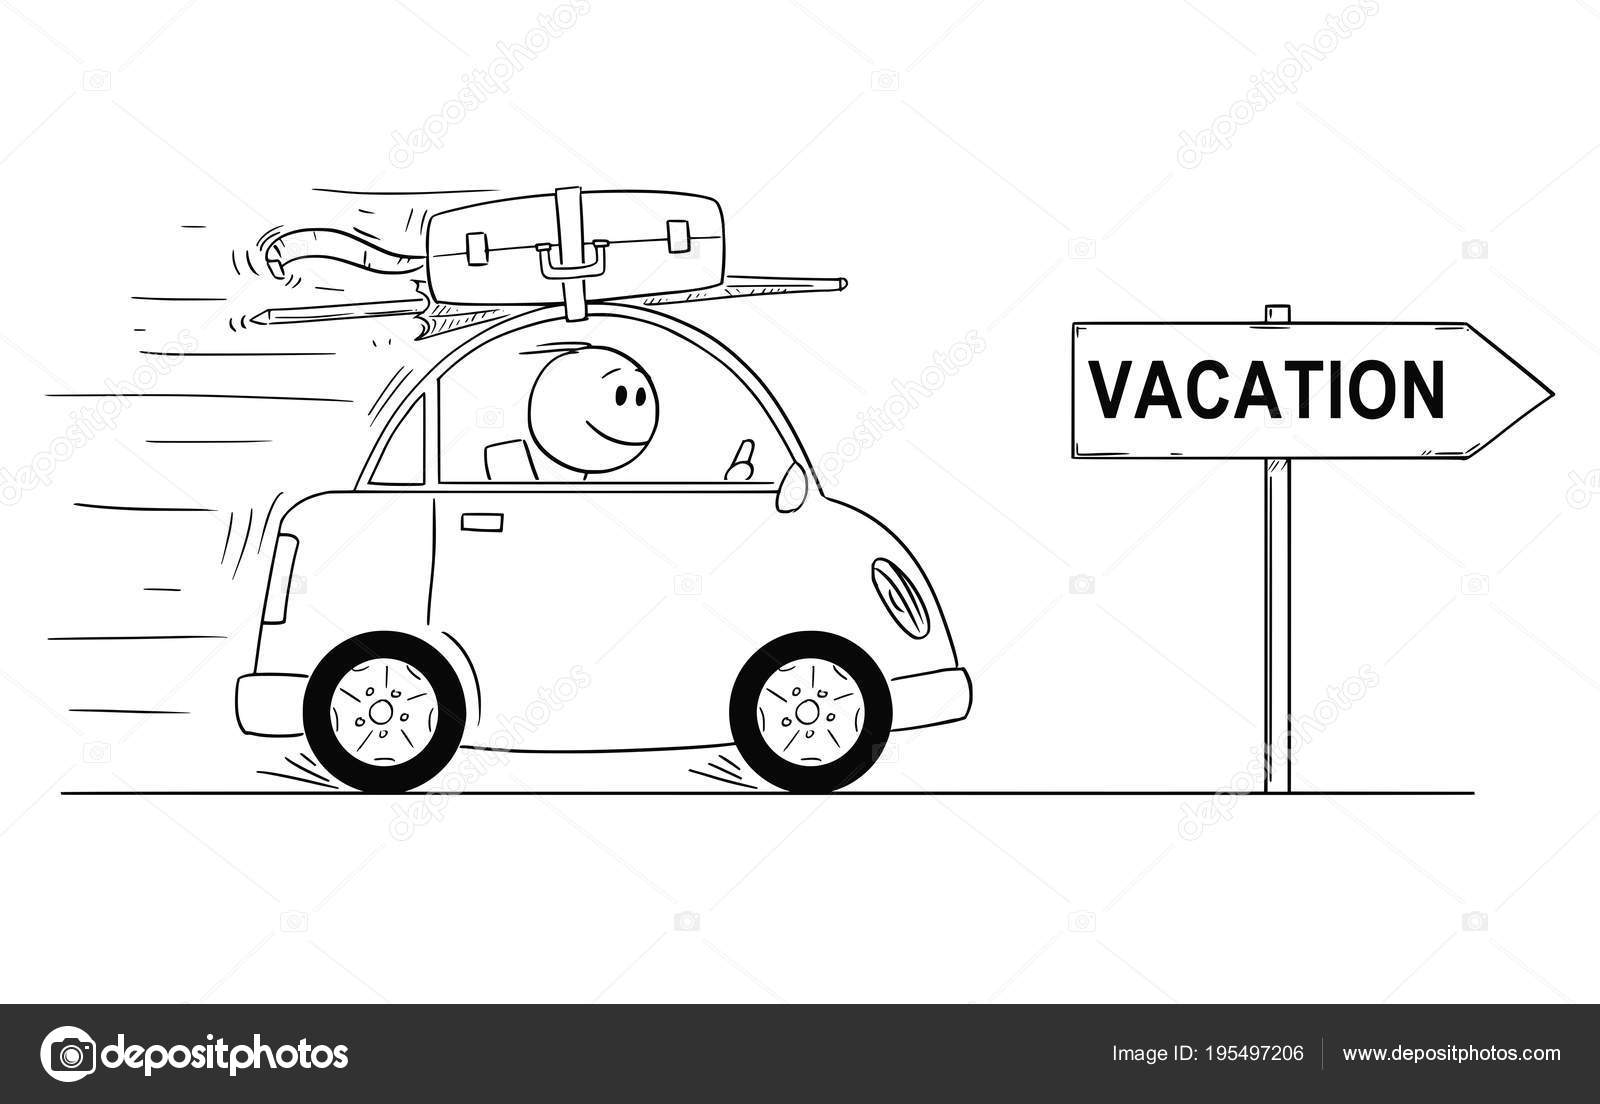 Cartoon Stick Man Drawing Conceptual Illustration Of Smiling In Small Car Going On Holiday Arrow Sign With Vacation Text